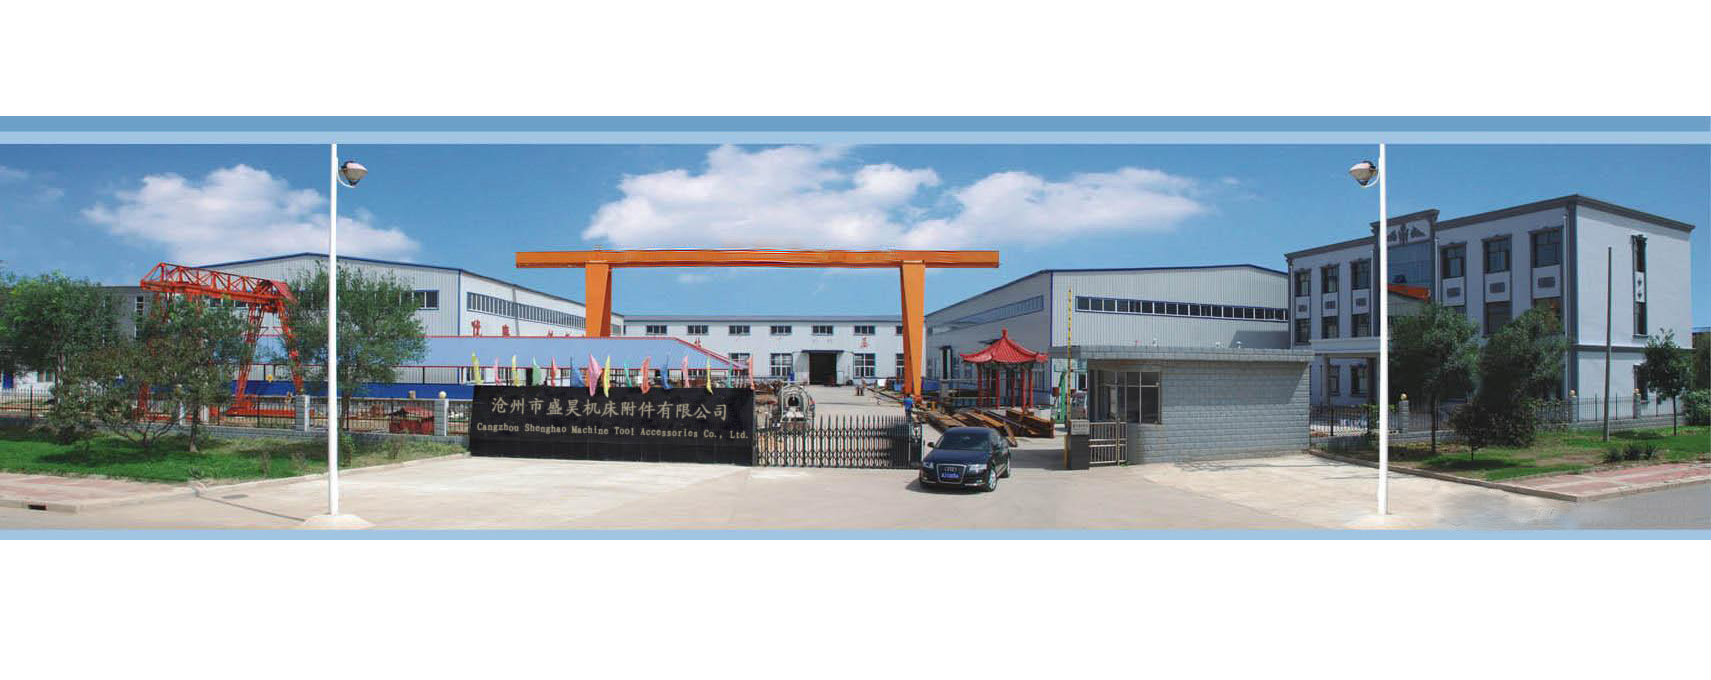 Equipment shenghao Manufacturer Banner